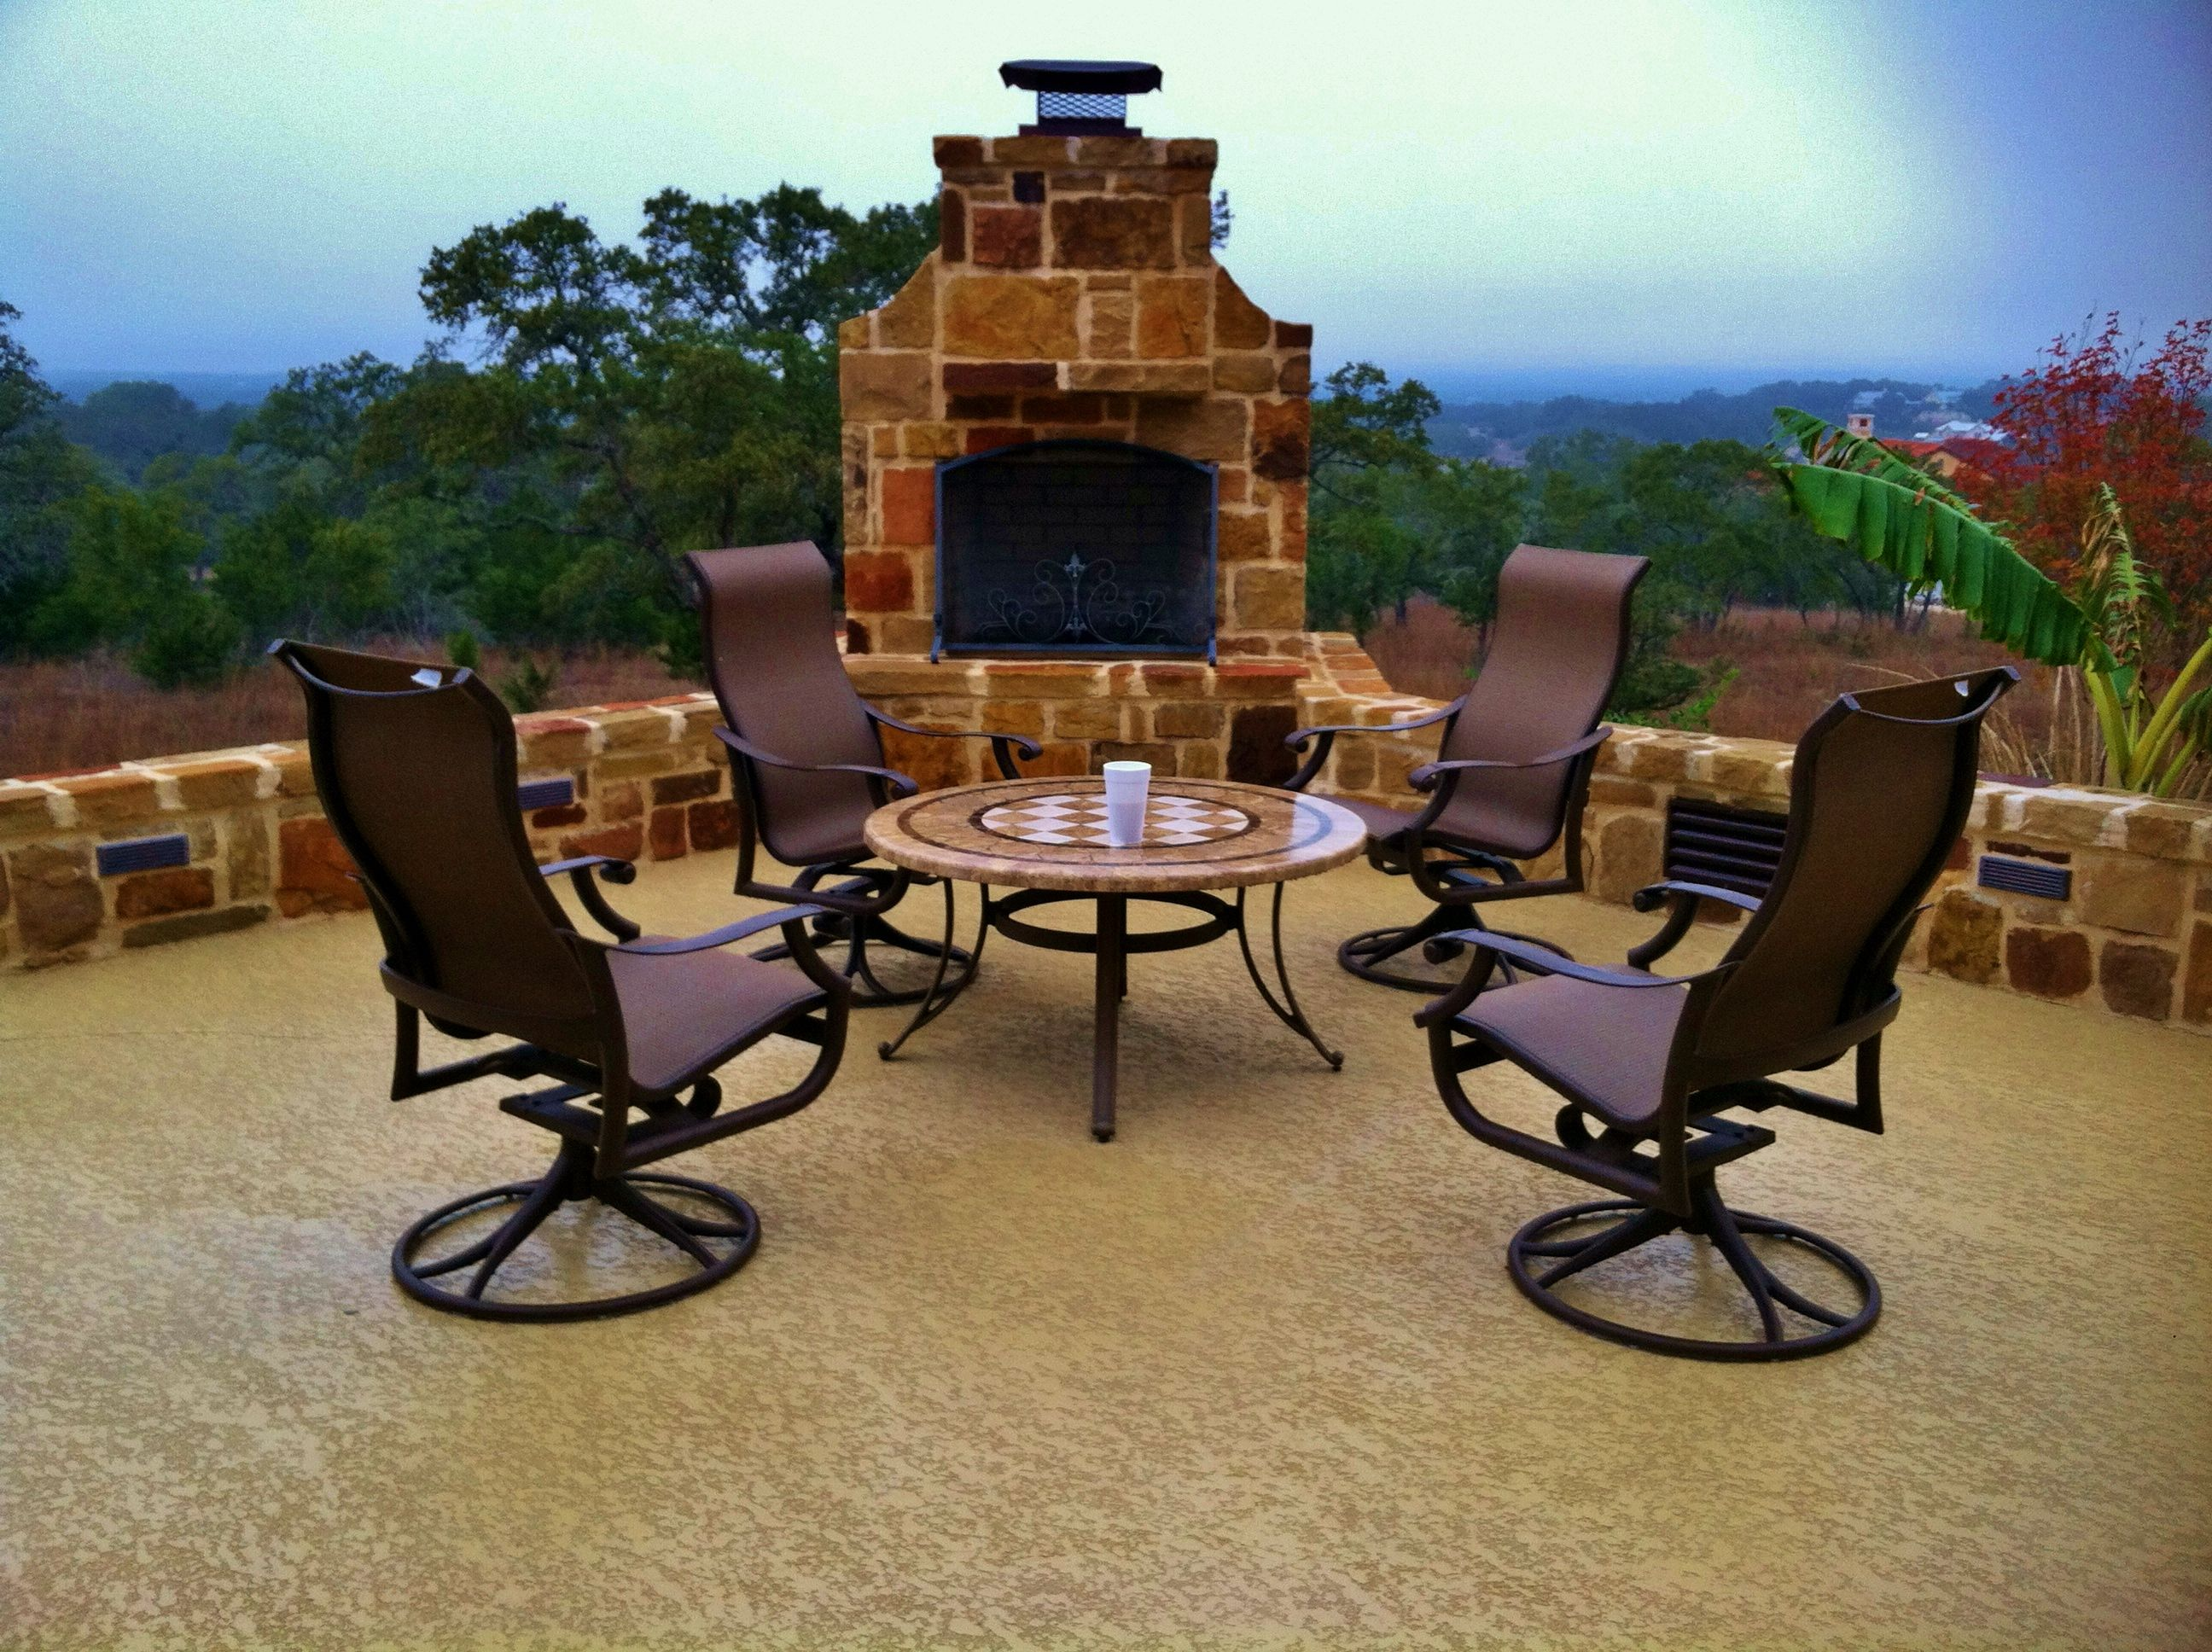 81dc6cd5f0085a057a83de3b91de44a0 Top Result 50 Awesome Cost Of Outdoor Fireplace Picture 2018 Zat3